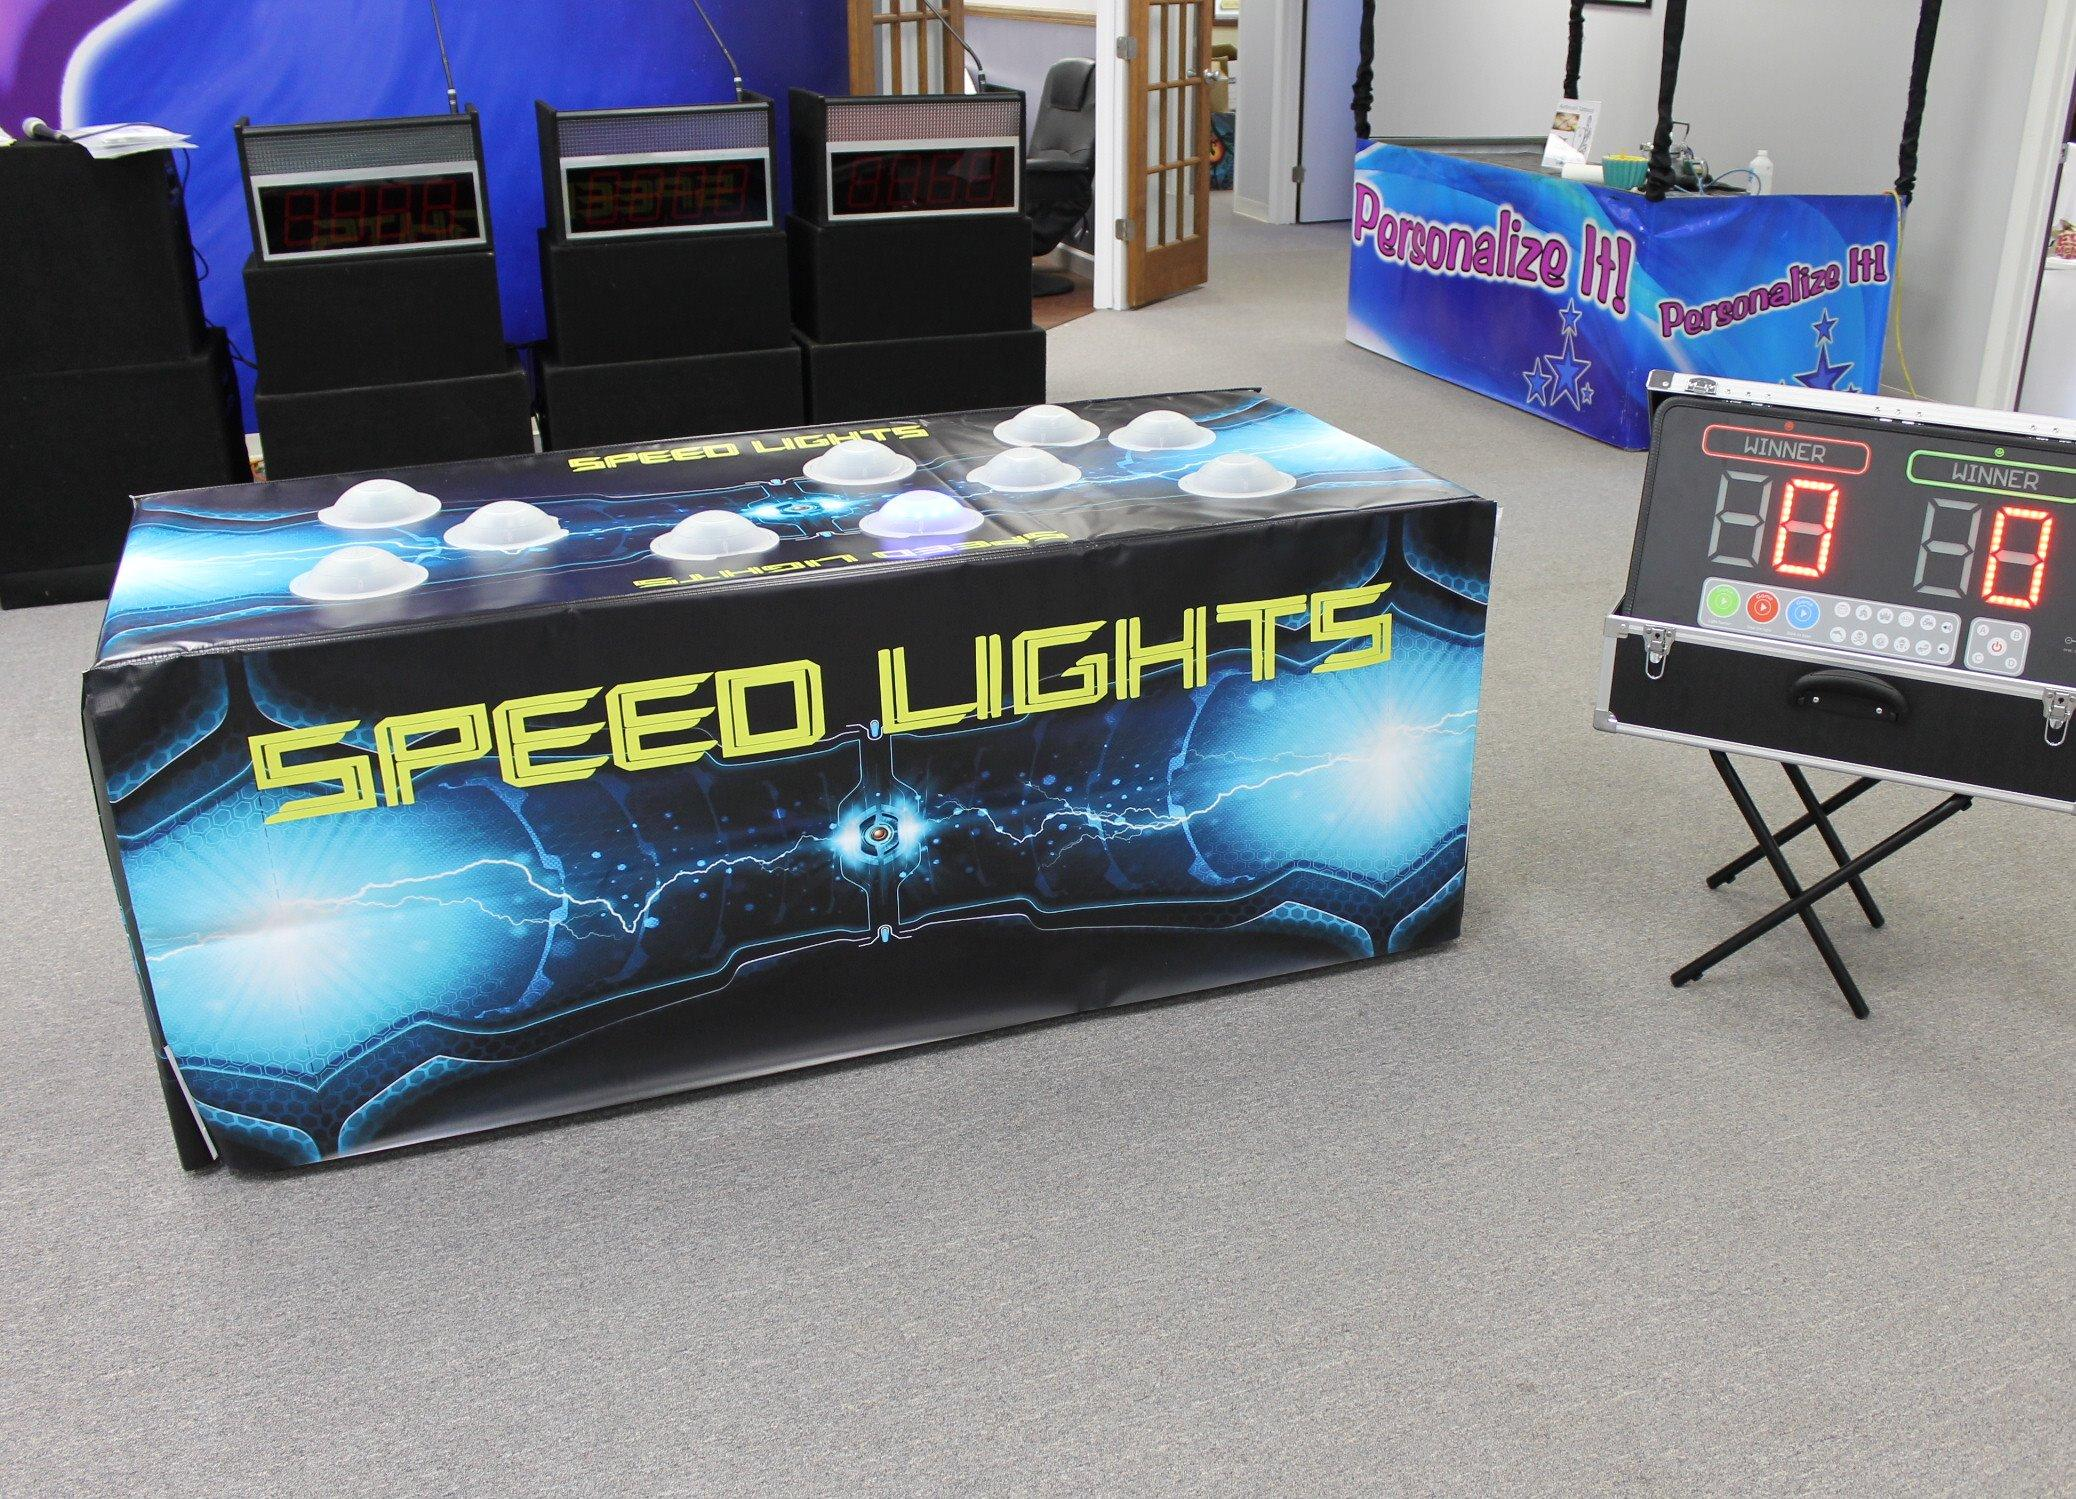 Compete your co-workers in a Round of Speed Lights